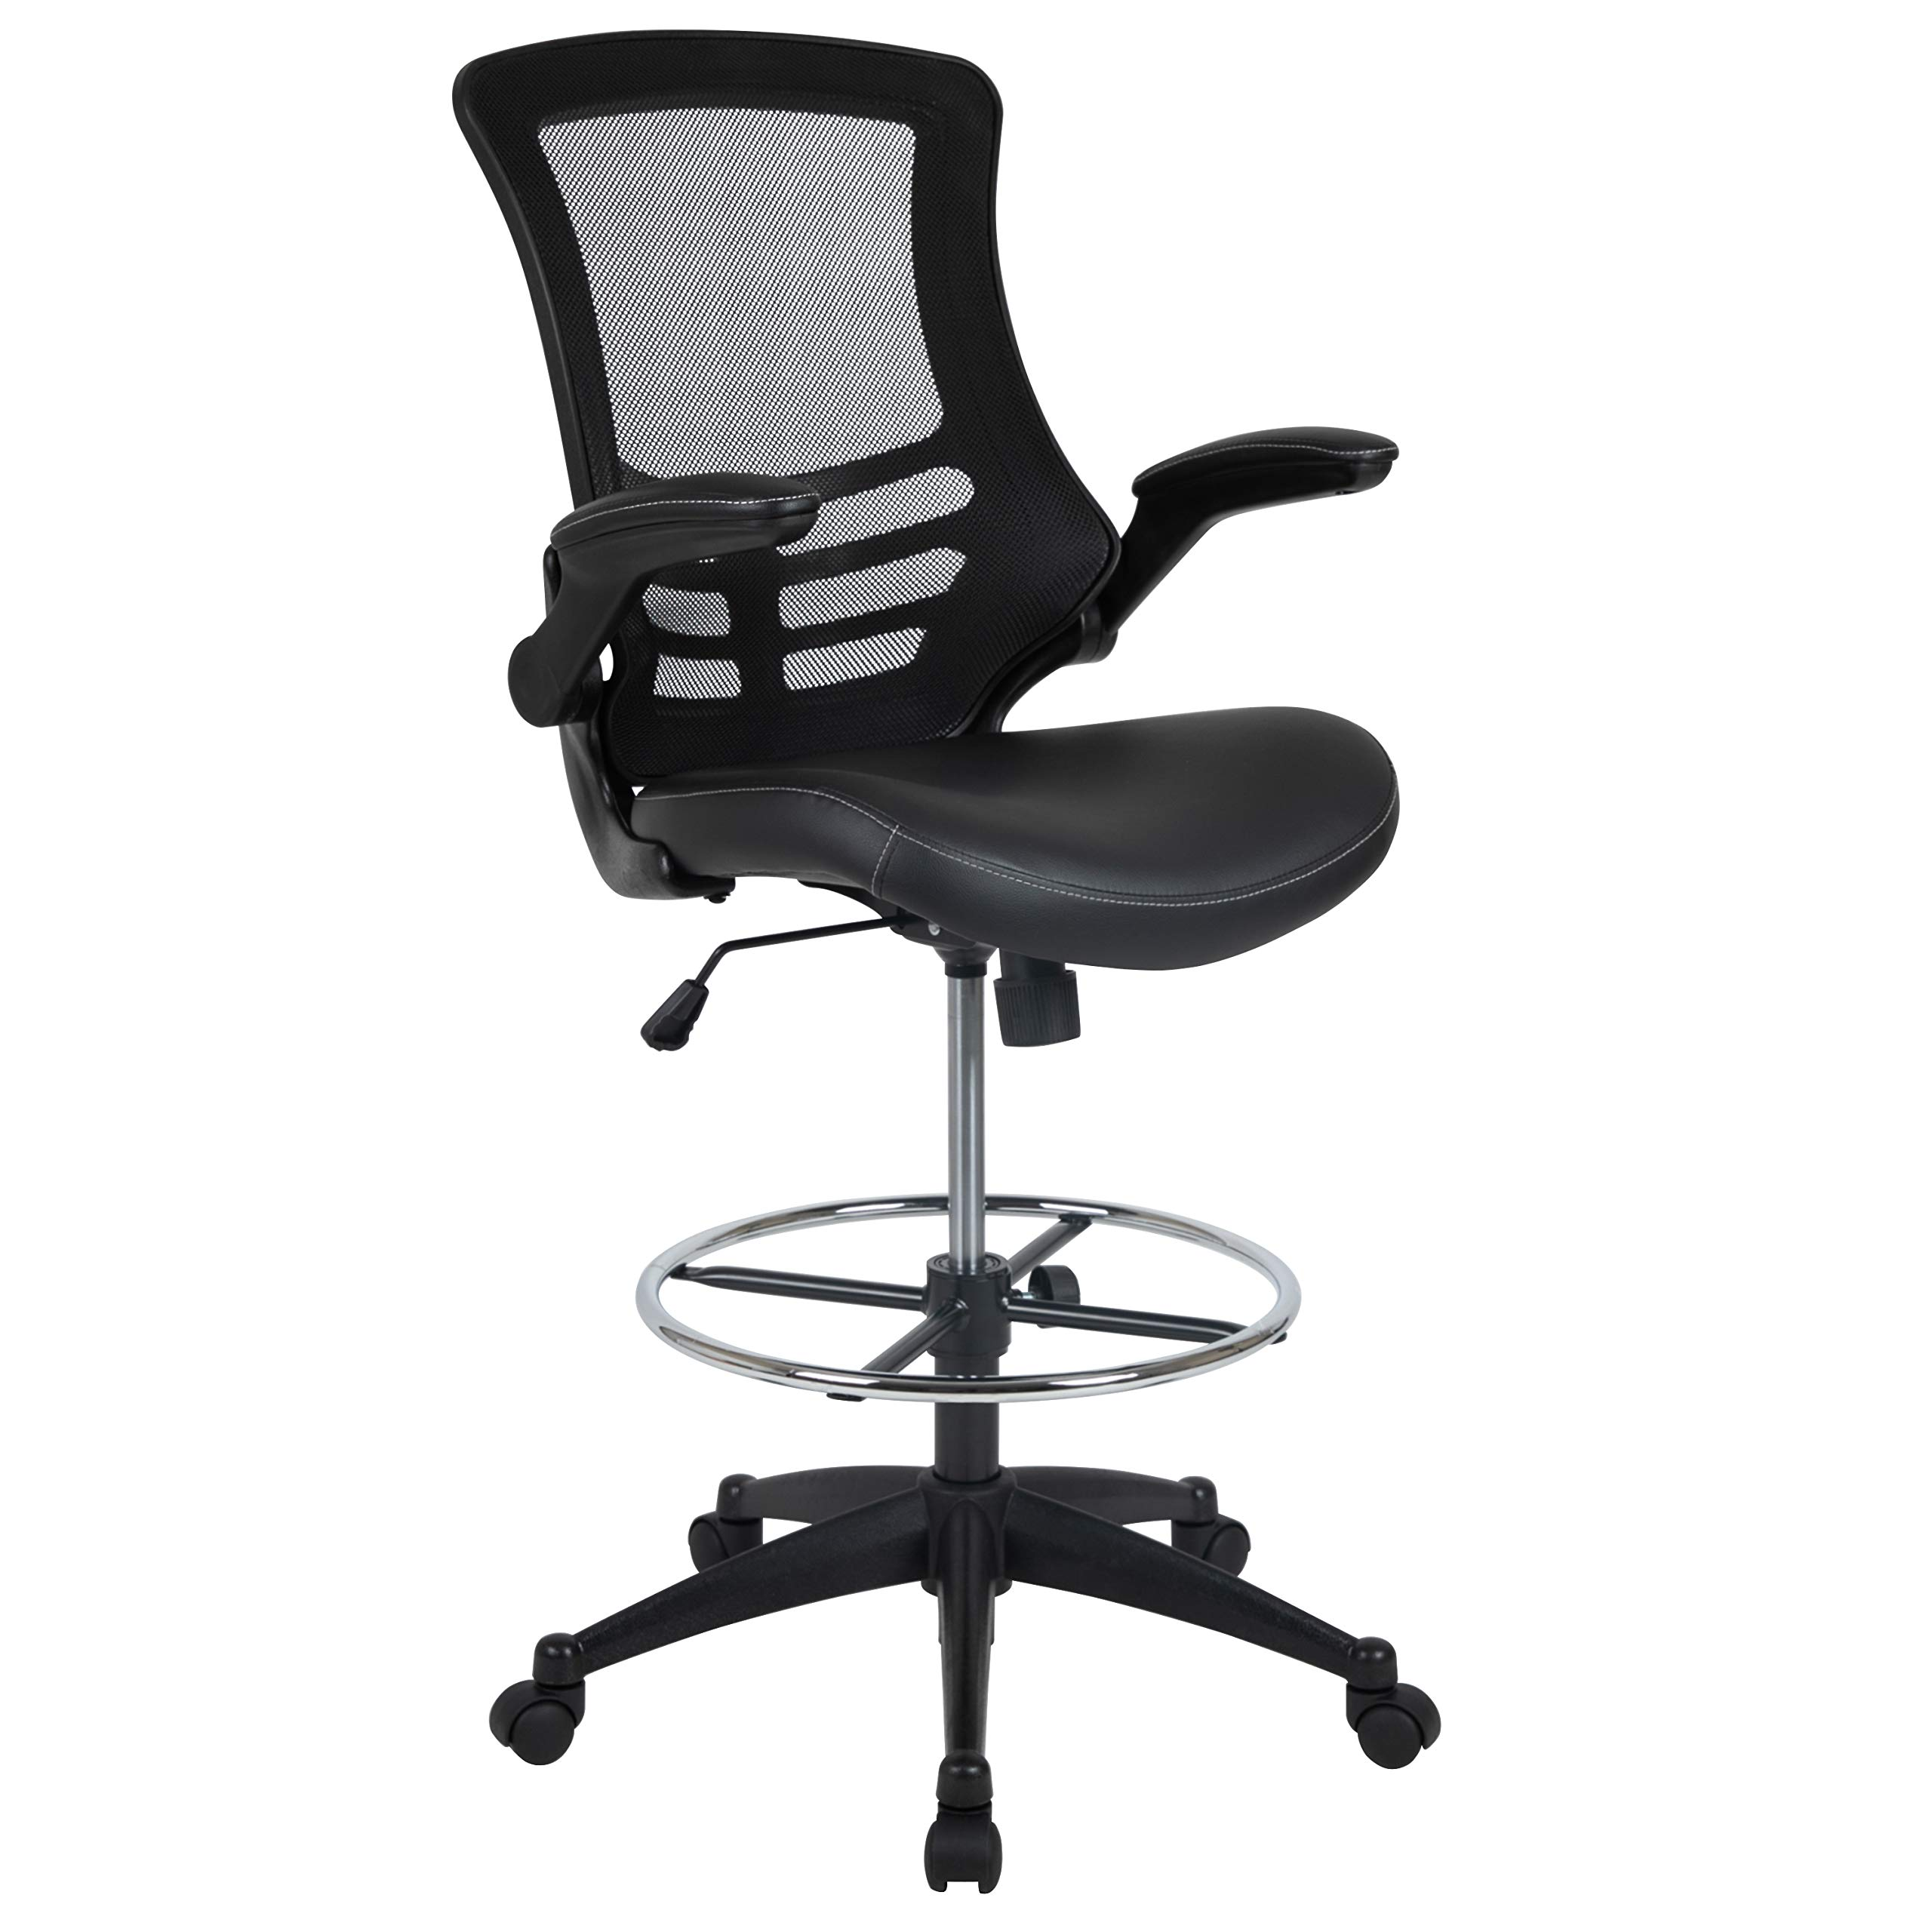 Flash Furniture Mid-Back Black Mesh Ergonomic Drafting Chair with LeatherSoft Seat, Adjustable Foot Ring and Flip-Up Arms by Flash Furniture